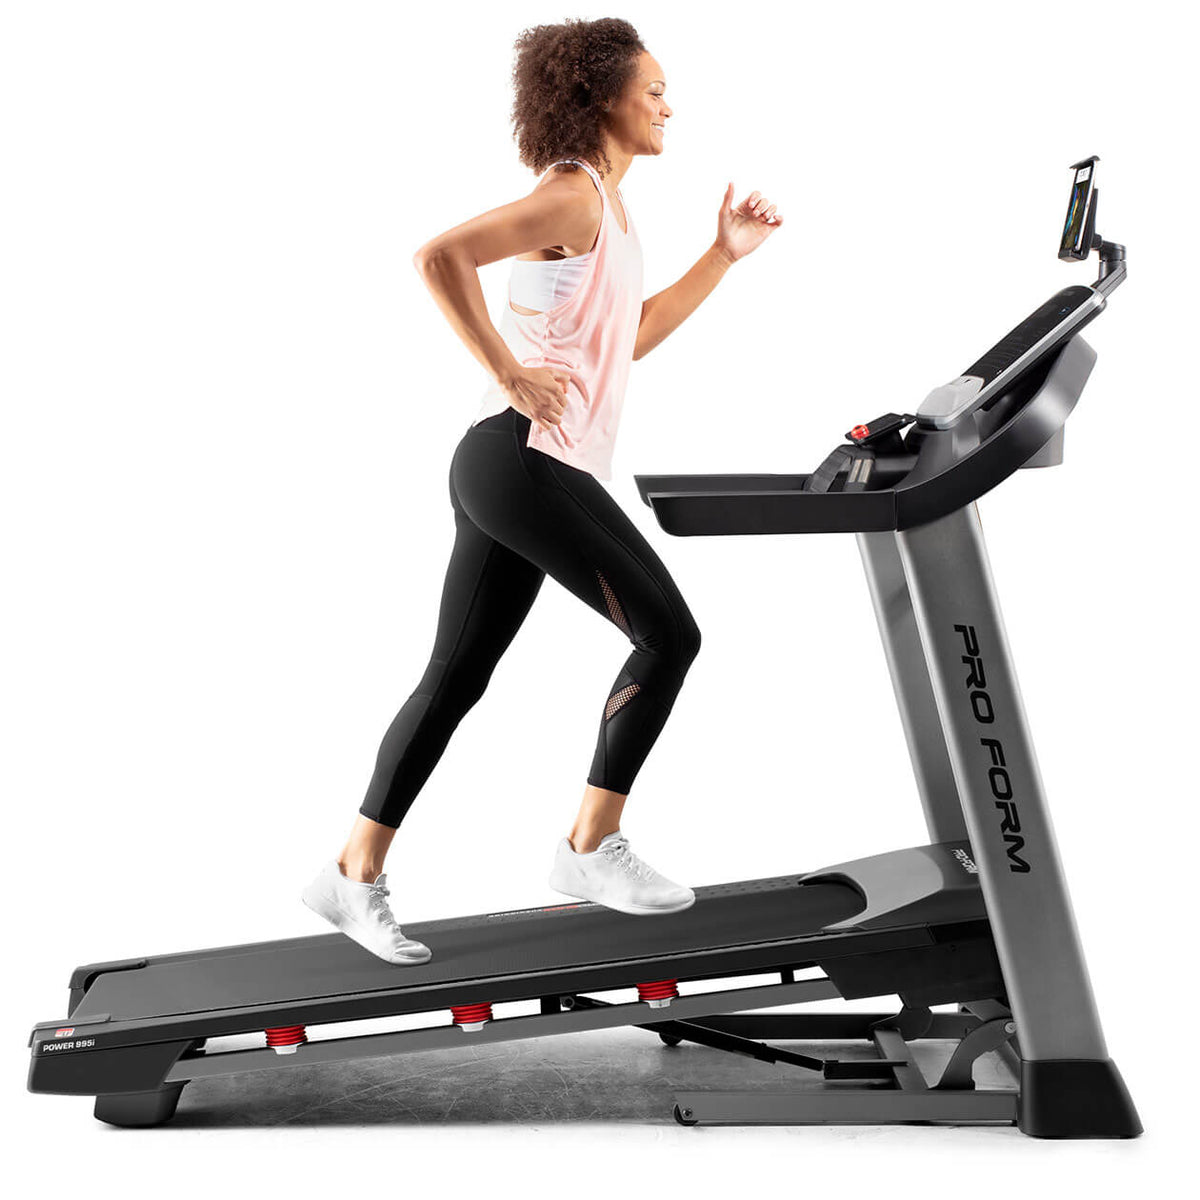 ProForm SMART Power 995i Treadmill PFTL99918 + 6 Months iFit Included